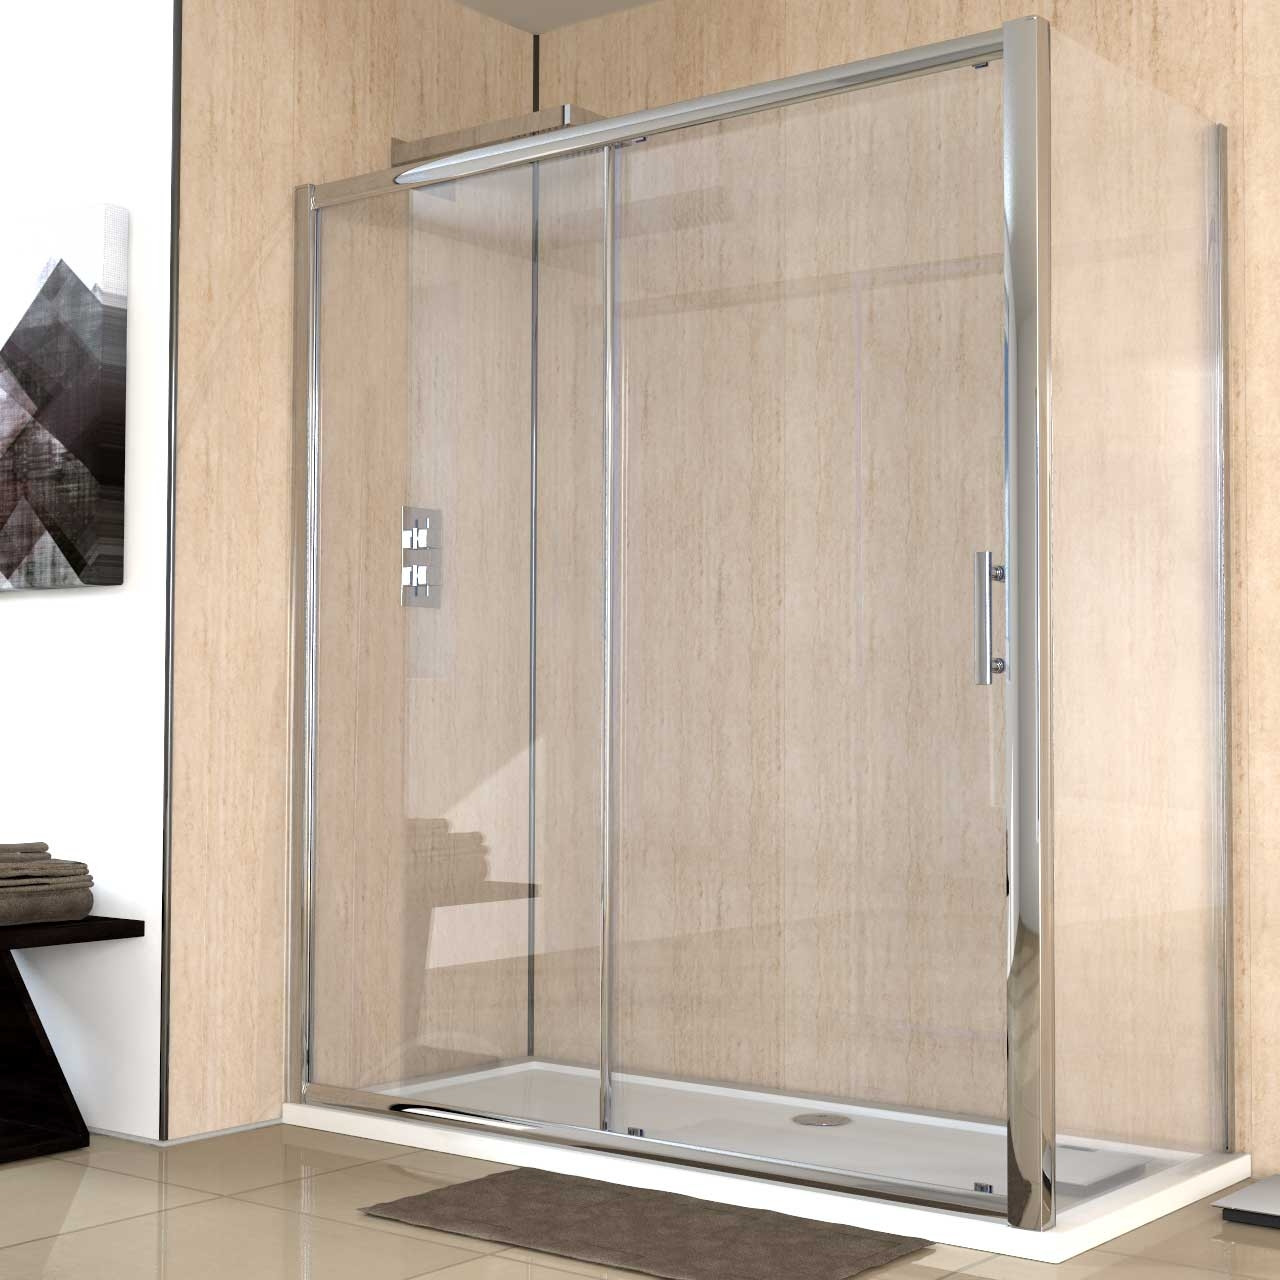 Series 8 1700mm x 760mm Sliding Door Shower Enclosure